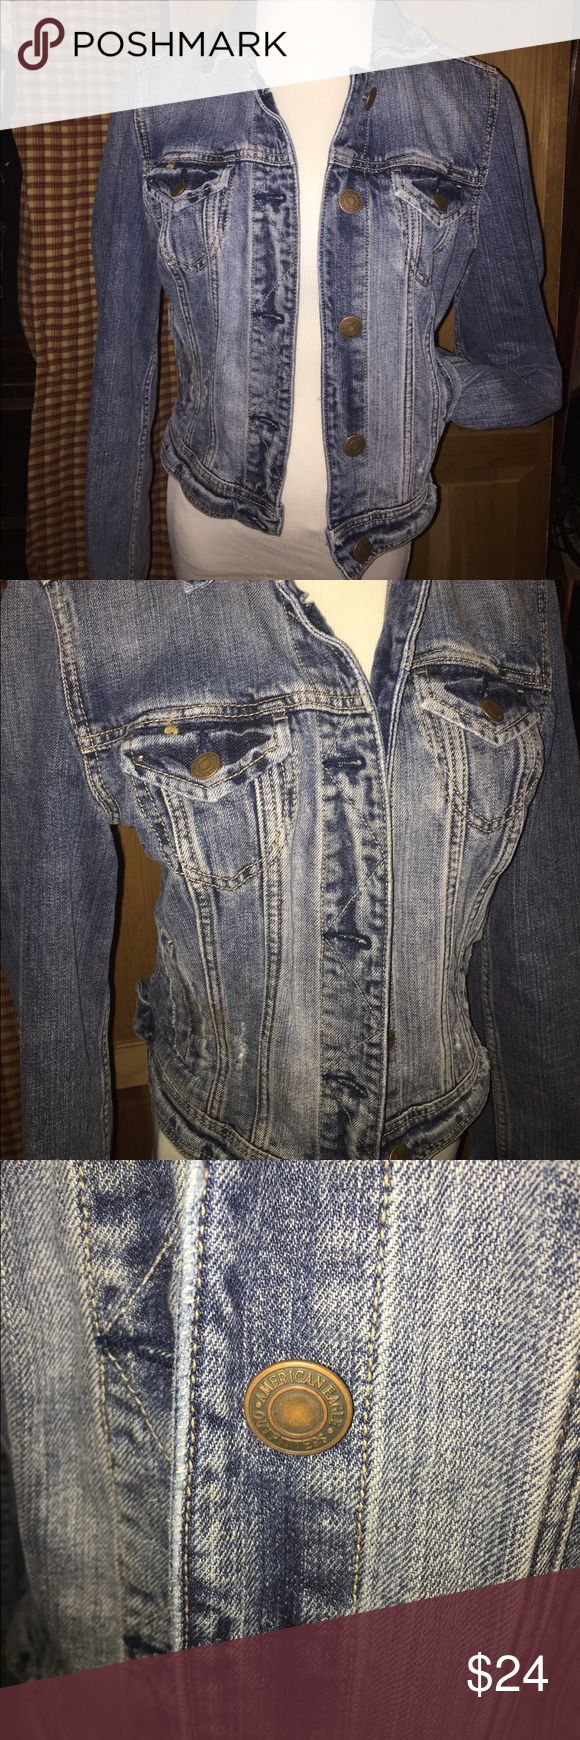 Distressed American Eagle jean jacket Size medium. Very cute. Sort of cropped. Not long. American Eagle Outfitters Jackets & Coats Jean Jackets